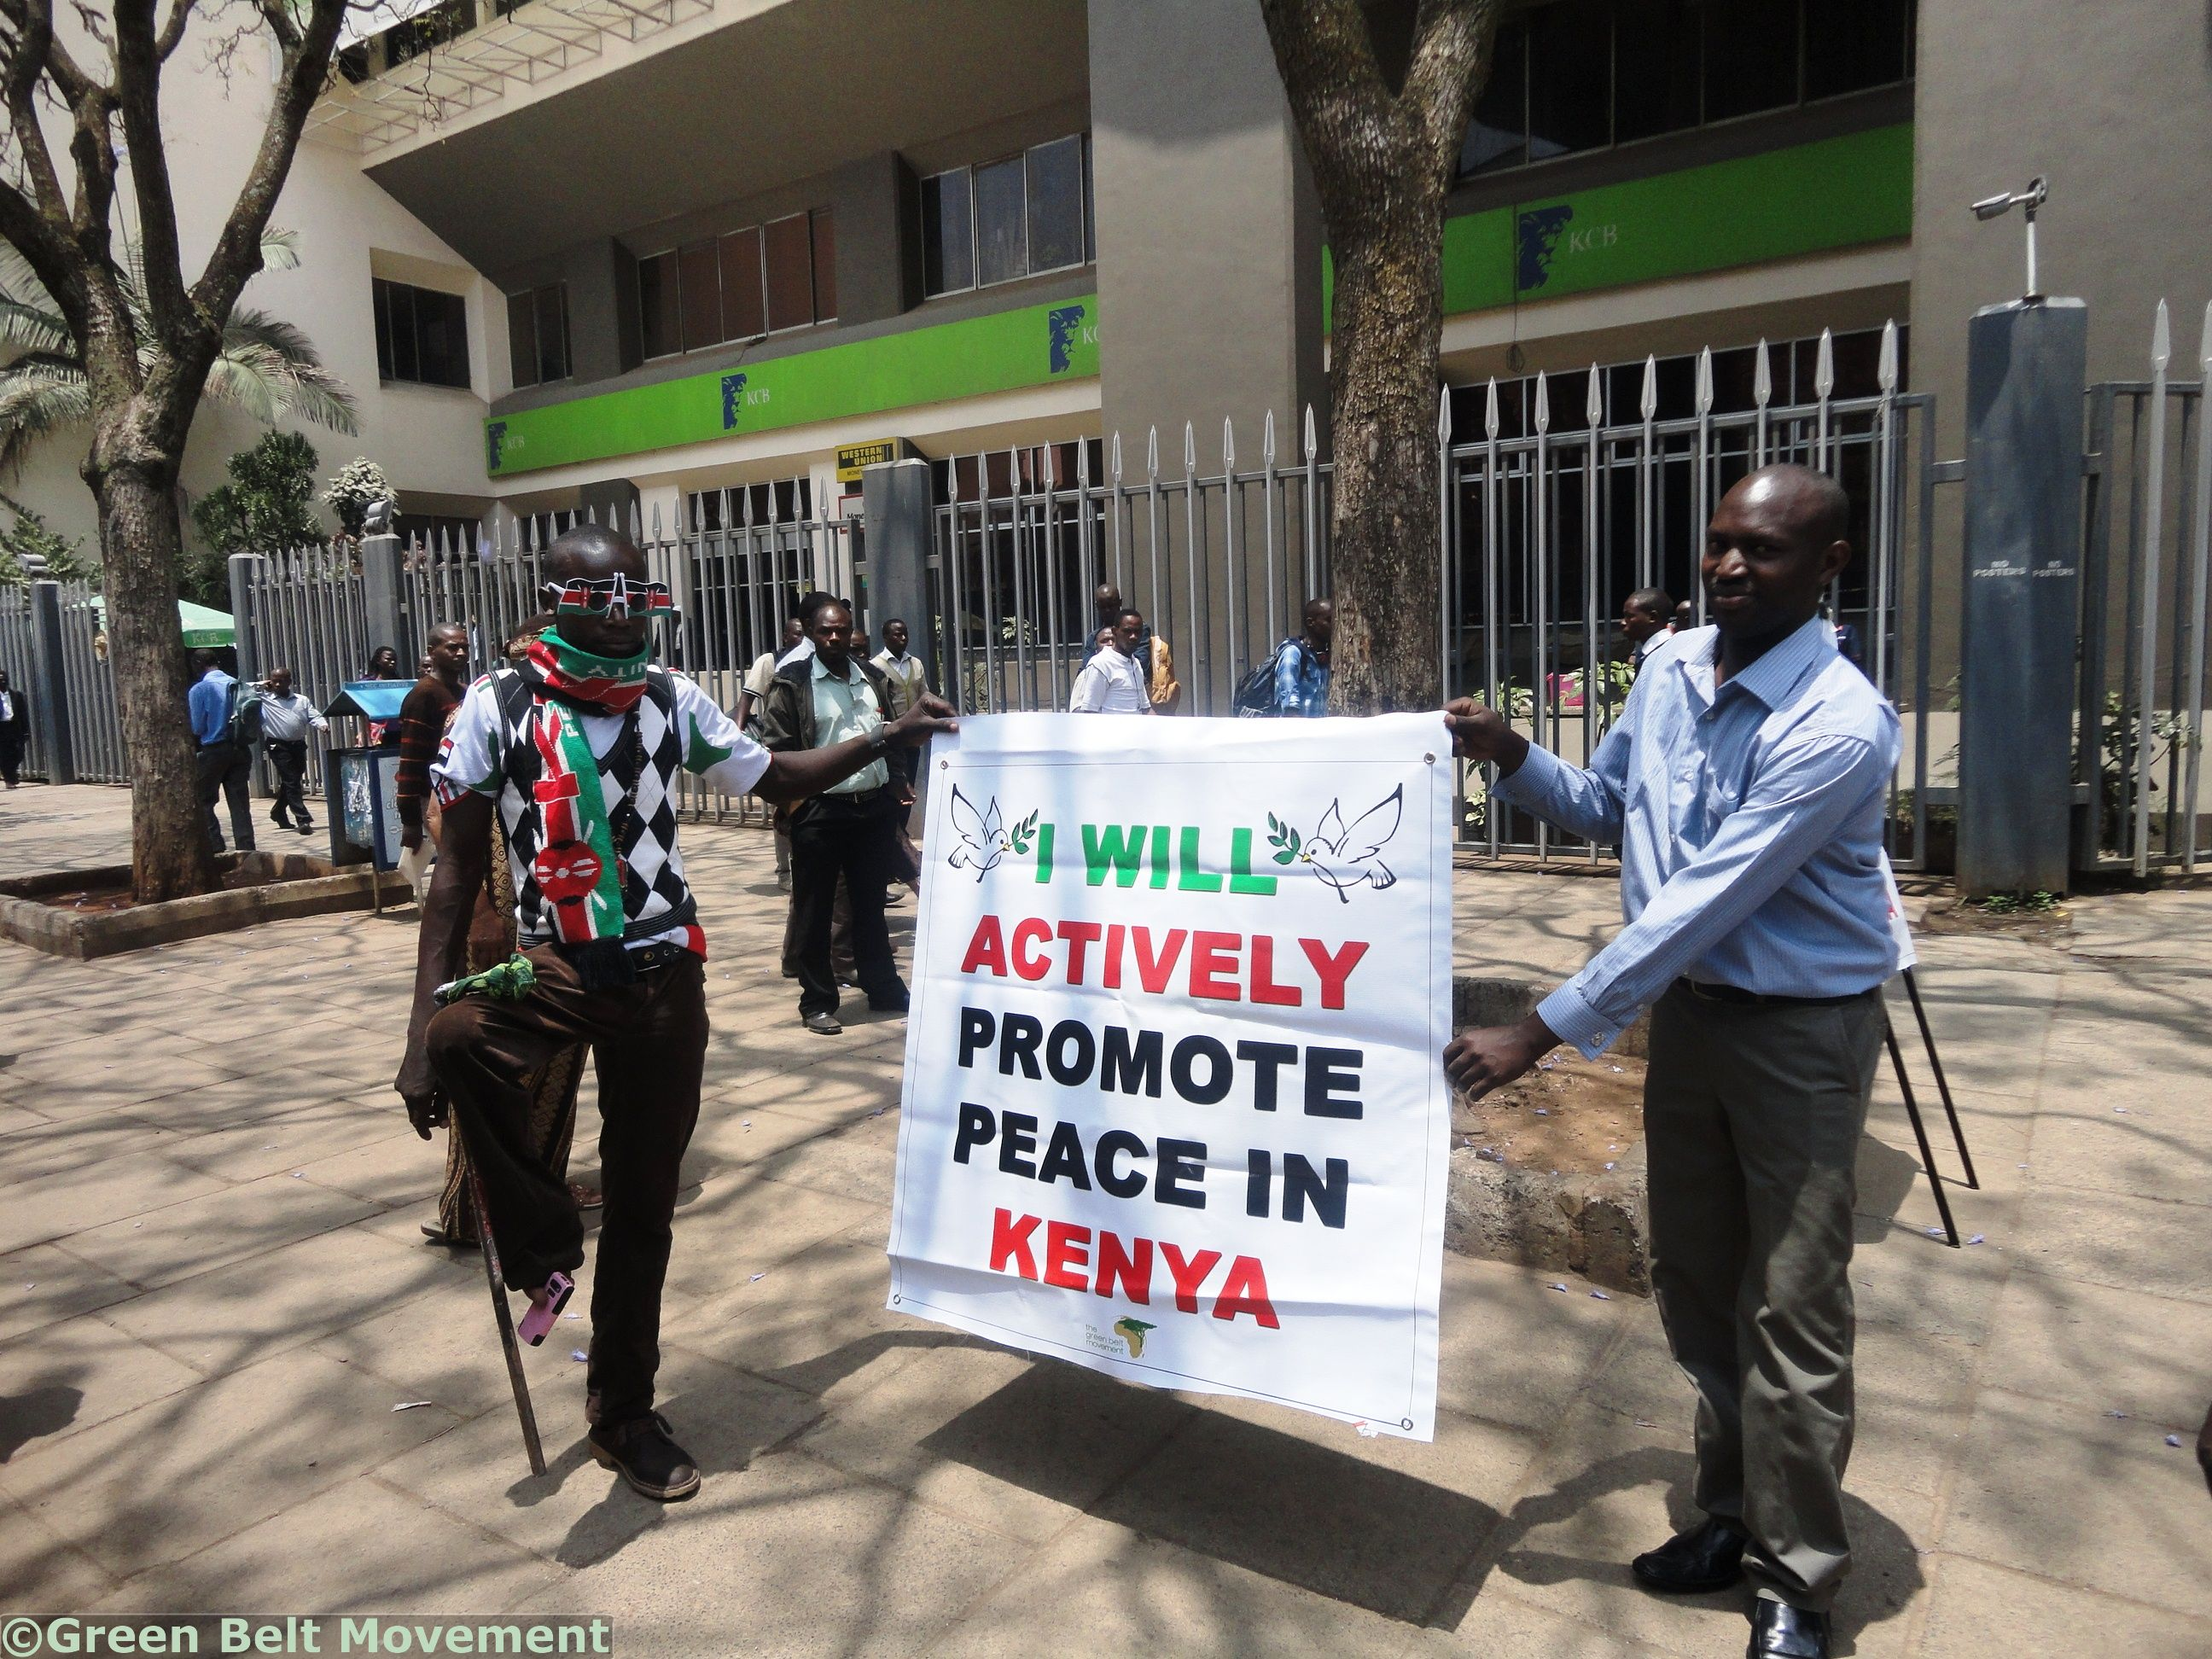 Citizens of Nairobi were eager to make a commitment to promote peace in the country.